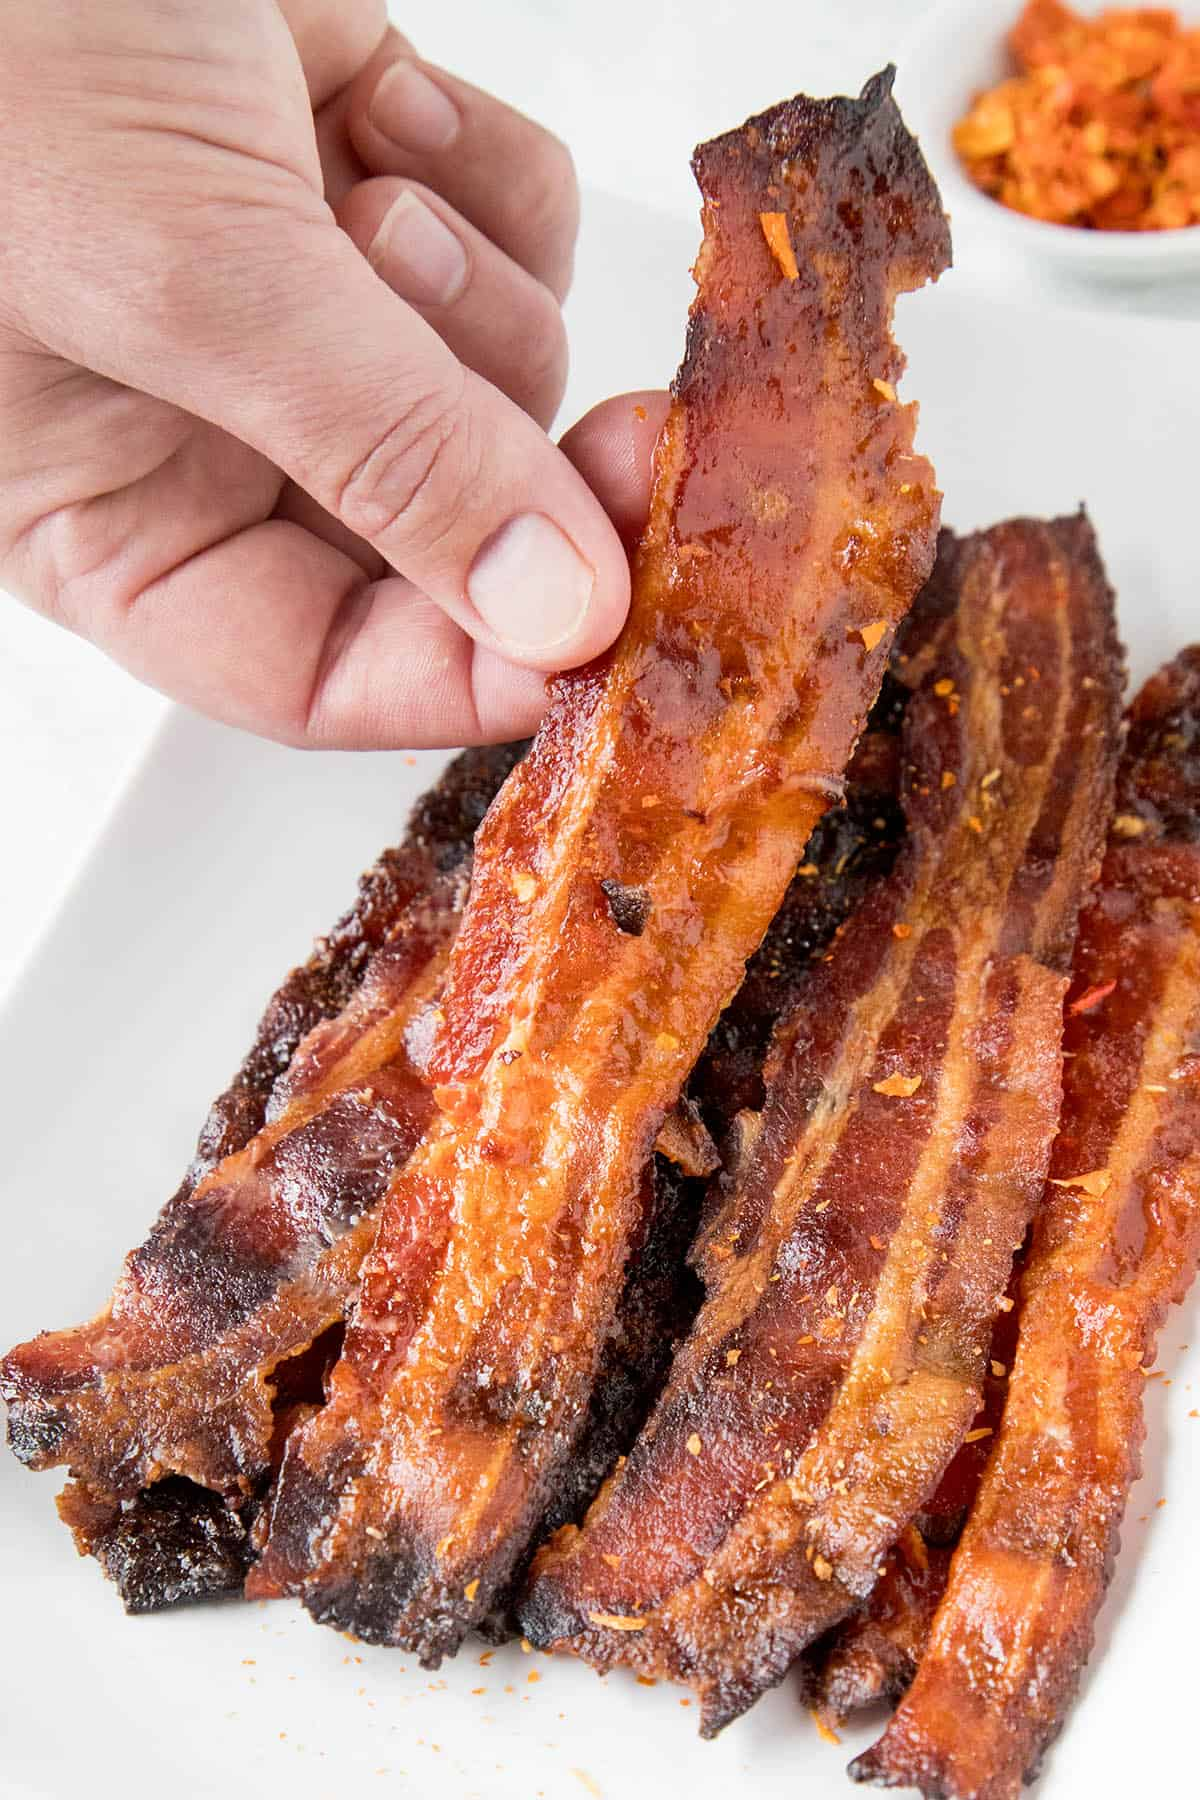 Grabbing a piece of Ghost Pepper Candied Bacon